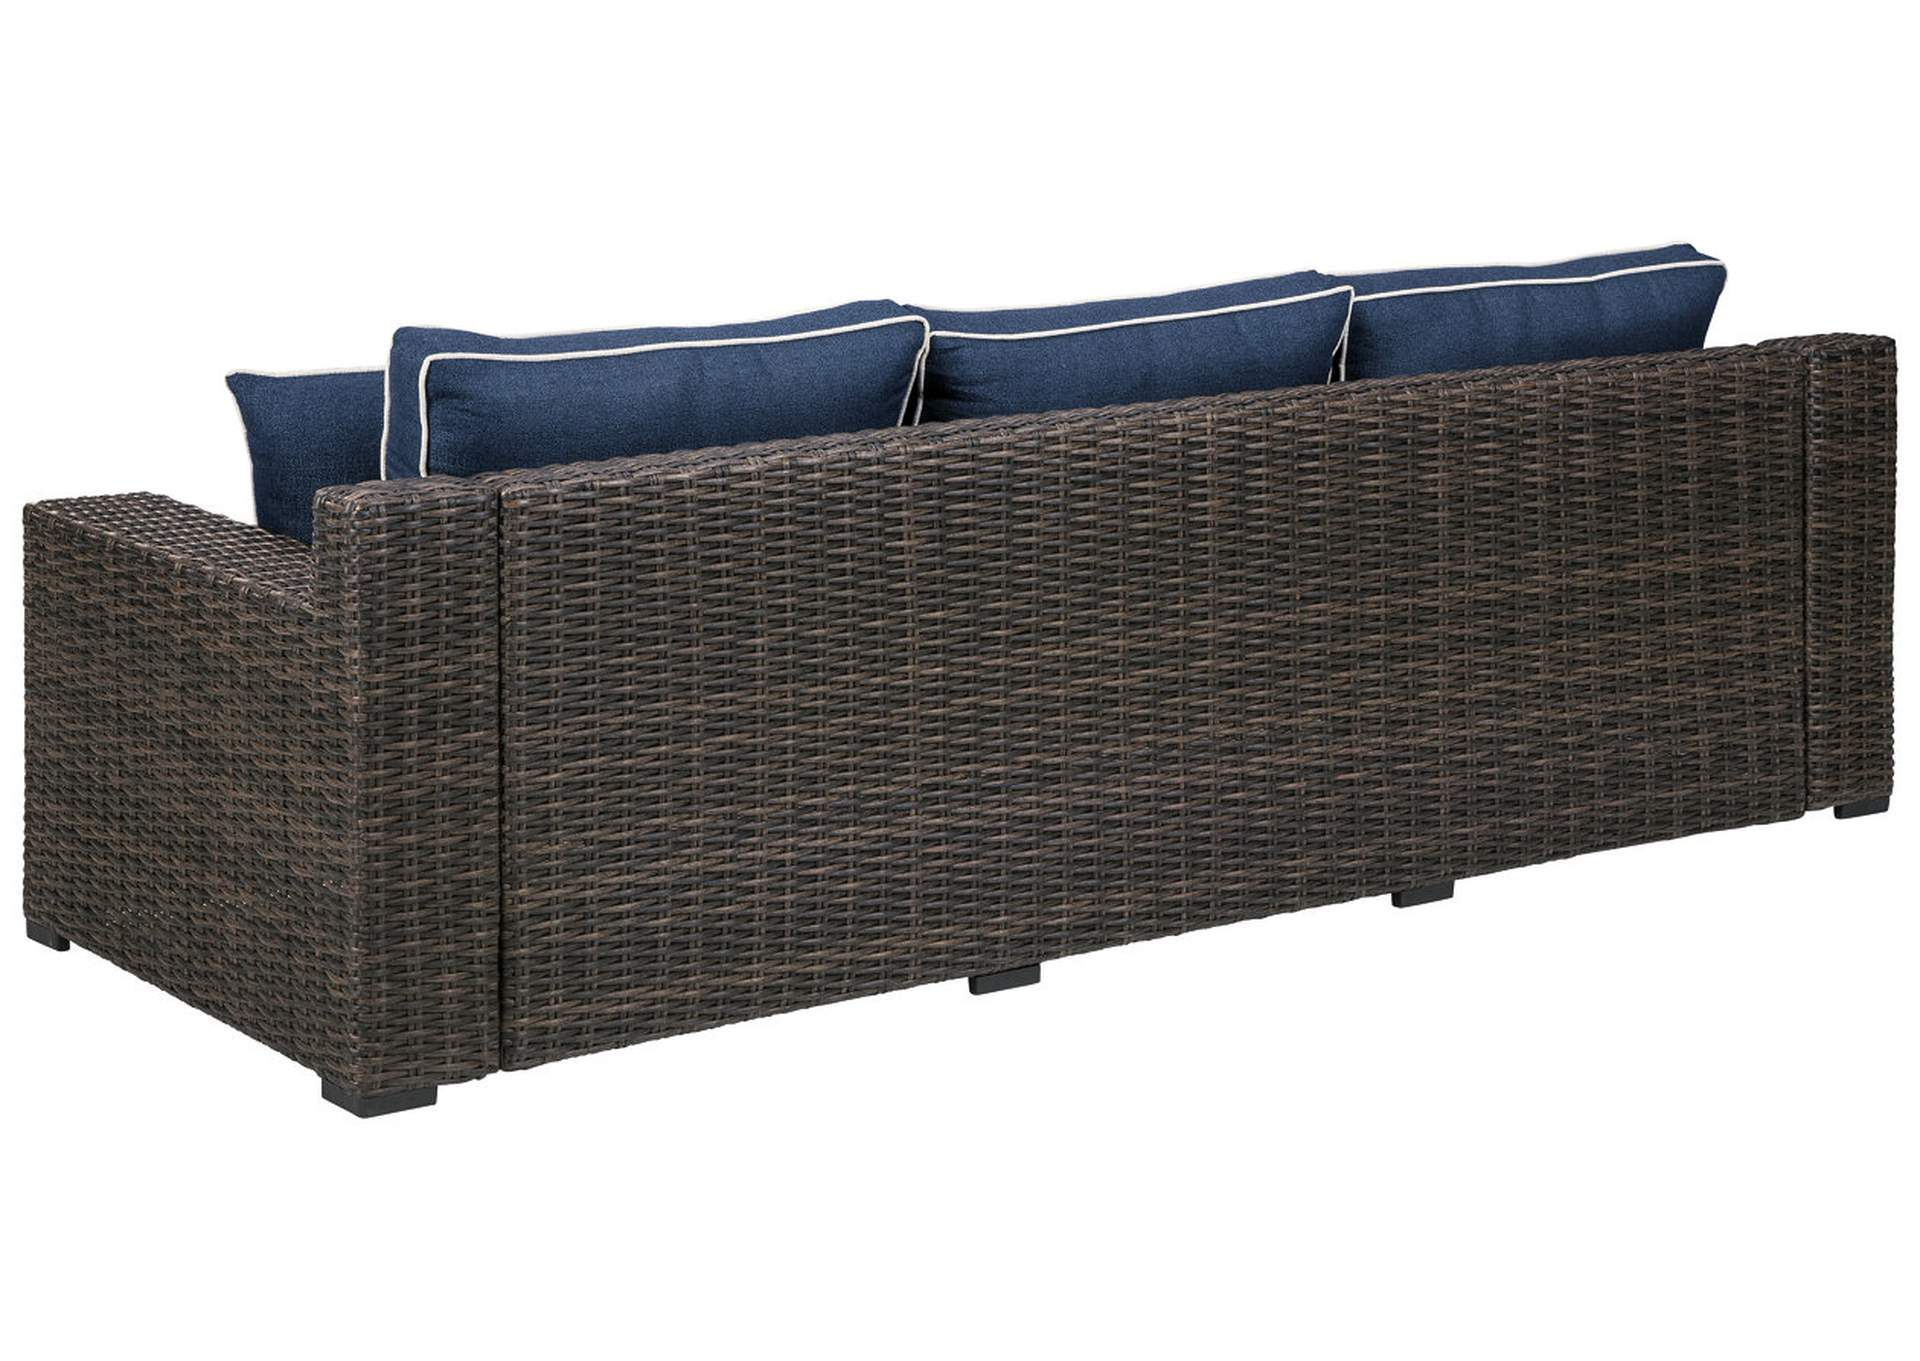 Grasson Lane Brown/Blue Sofa with Cushion,Outdoor By Ashley